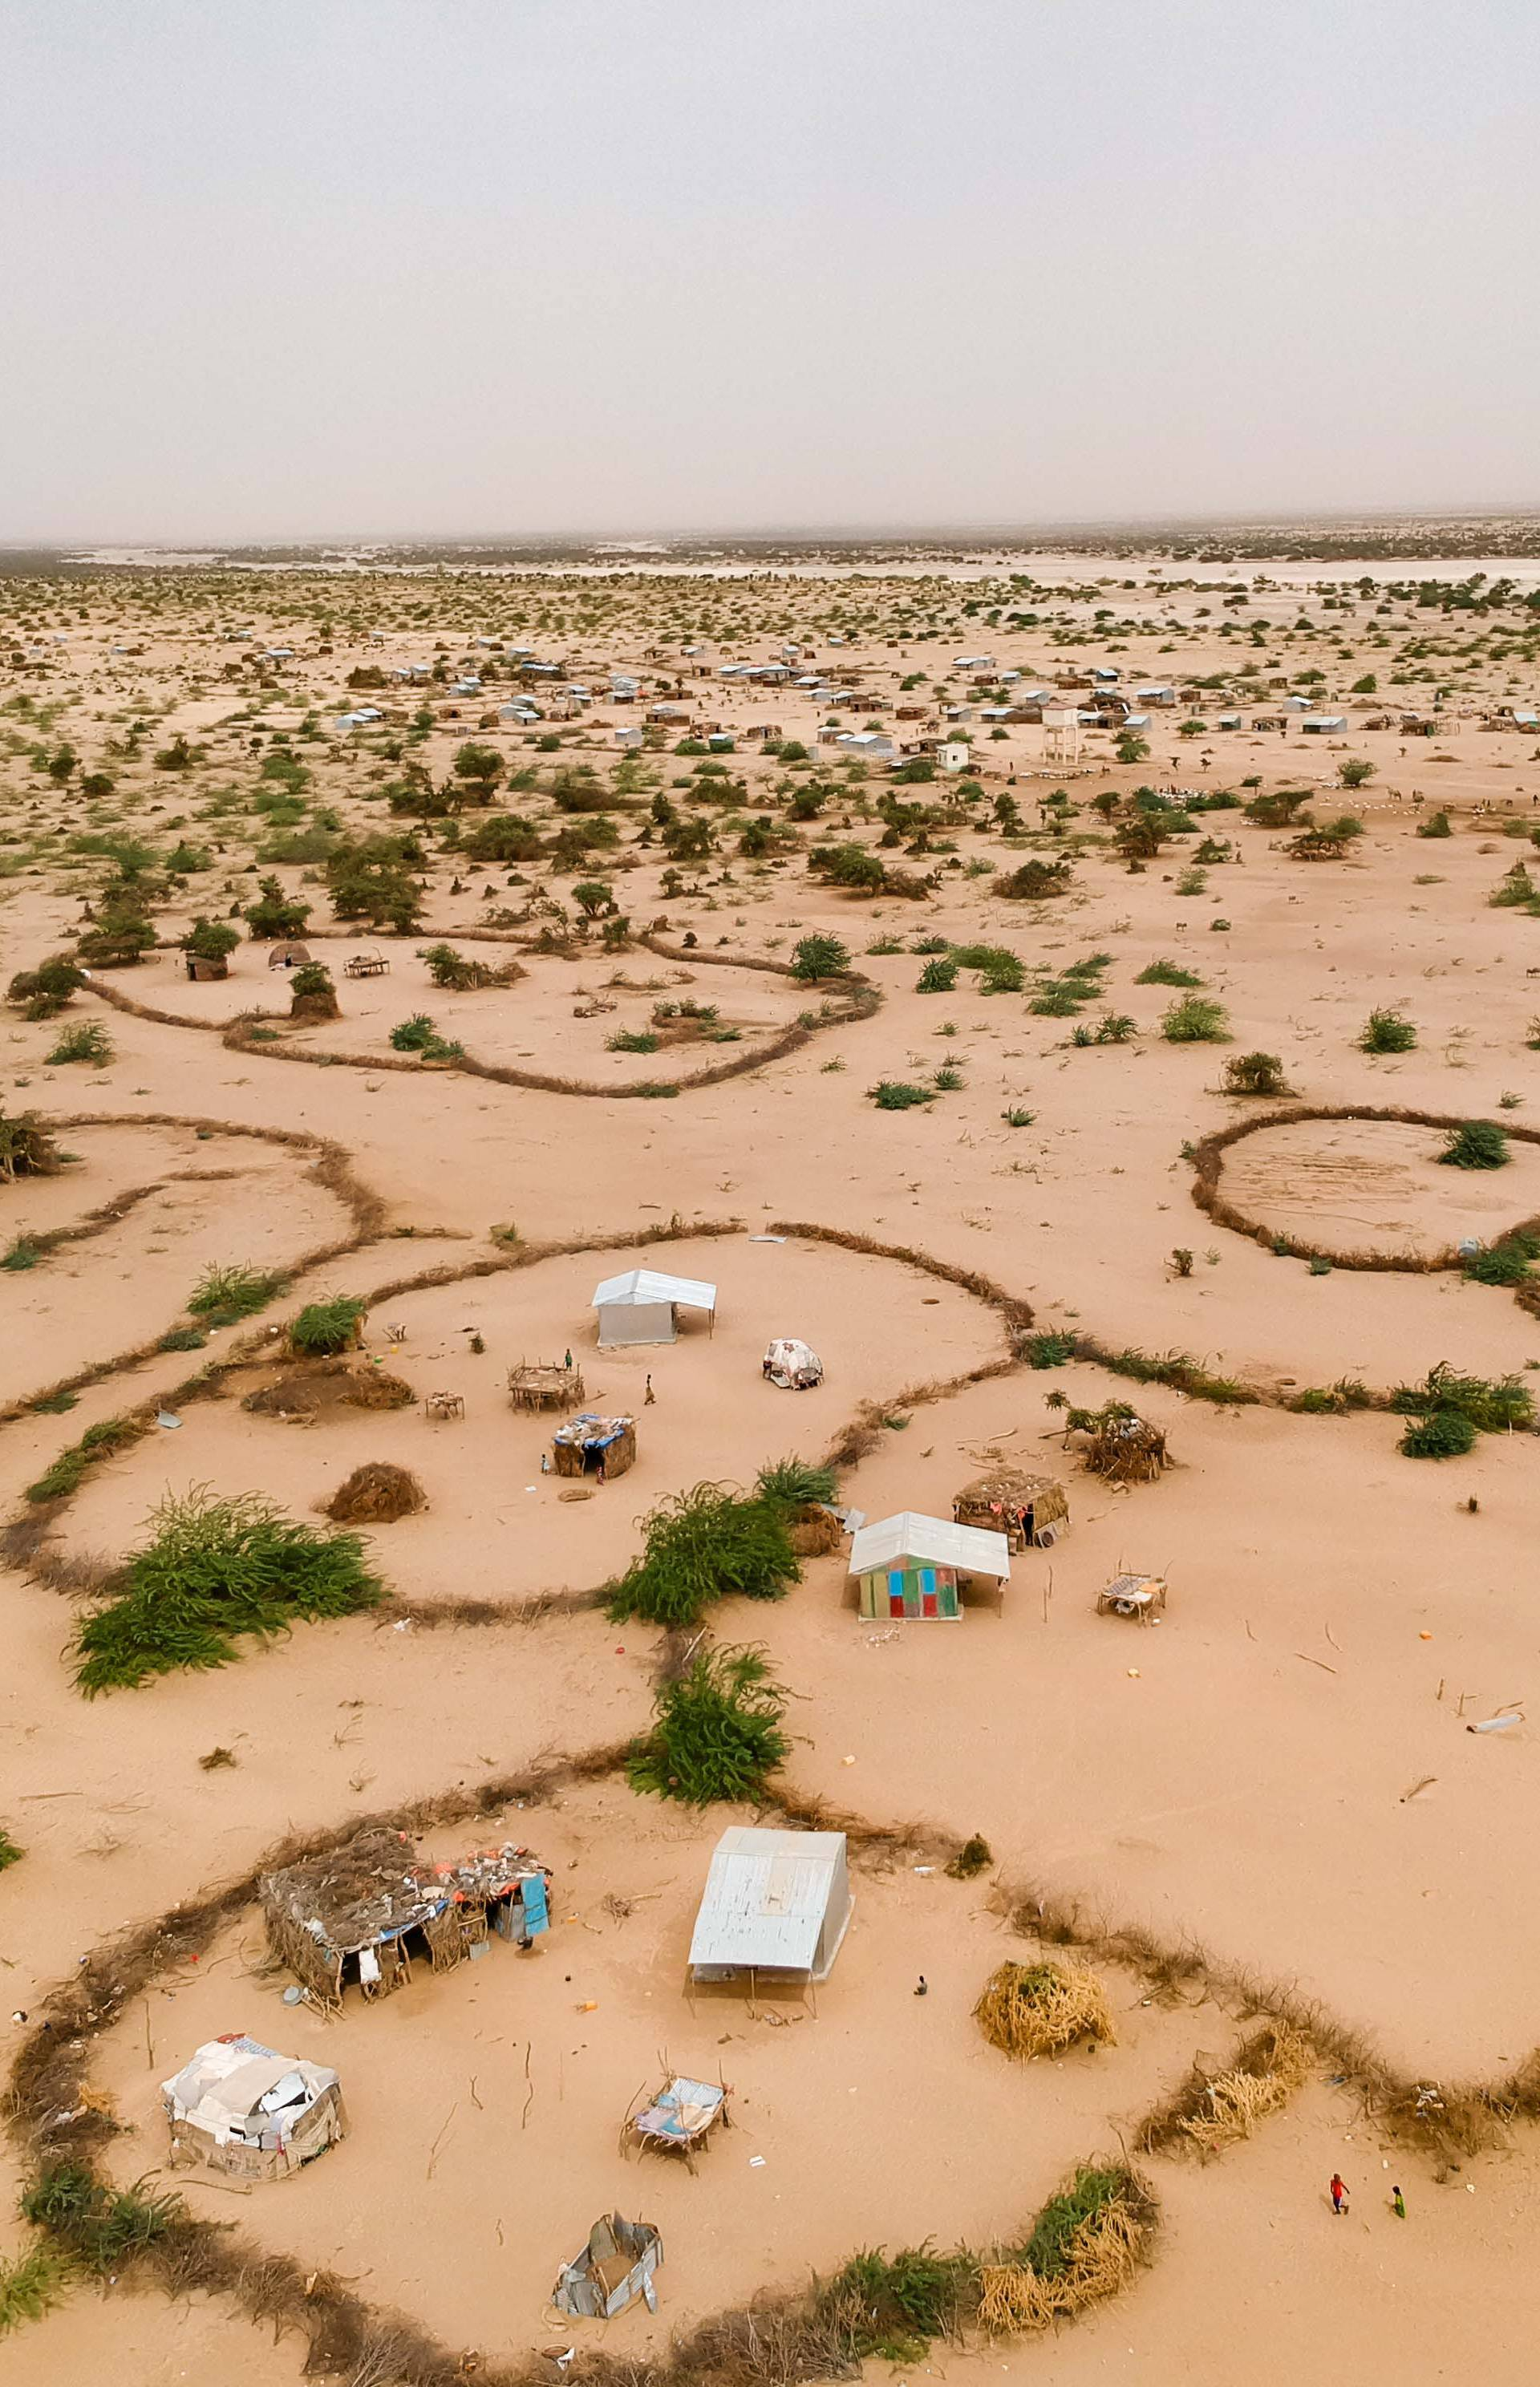 The Abdigeedi village, 100 miles northwest of Hargeisa in Somaliland and near the border with Djibouti